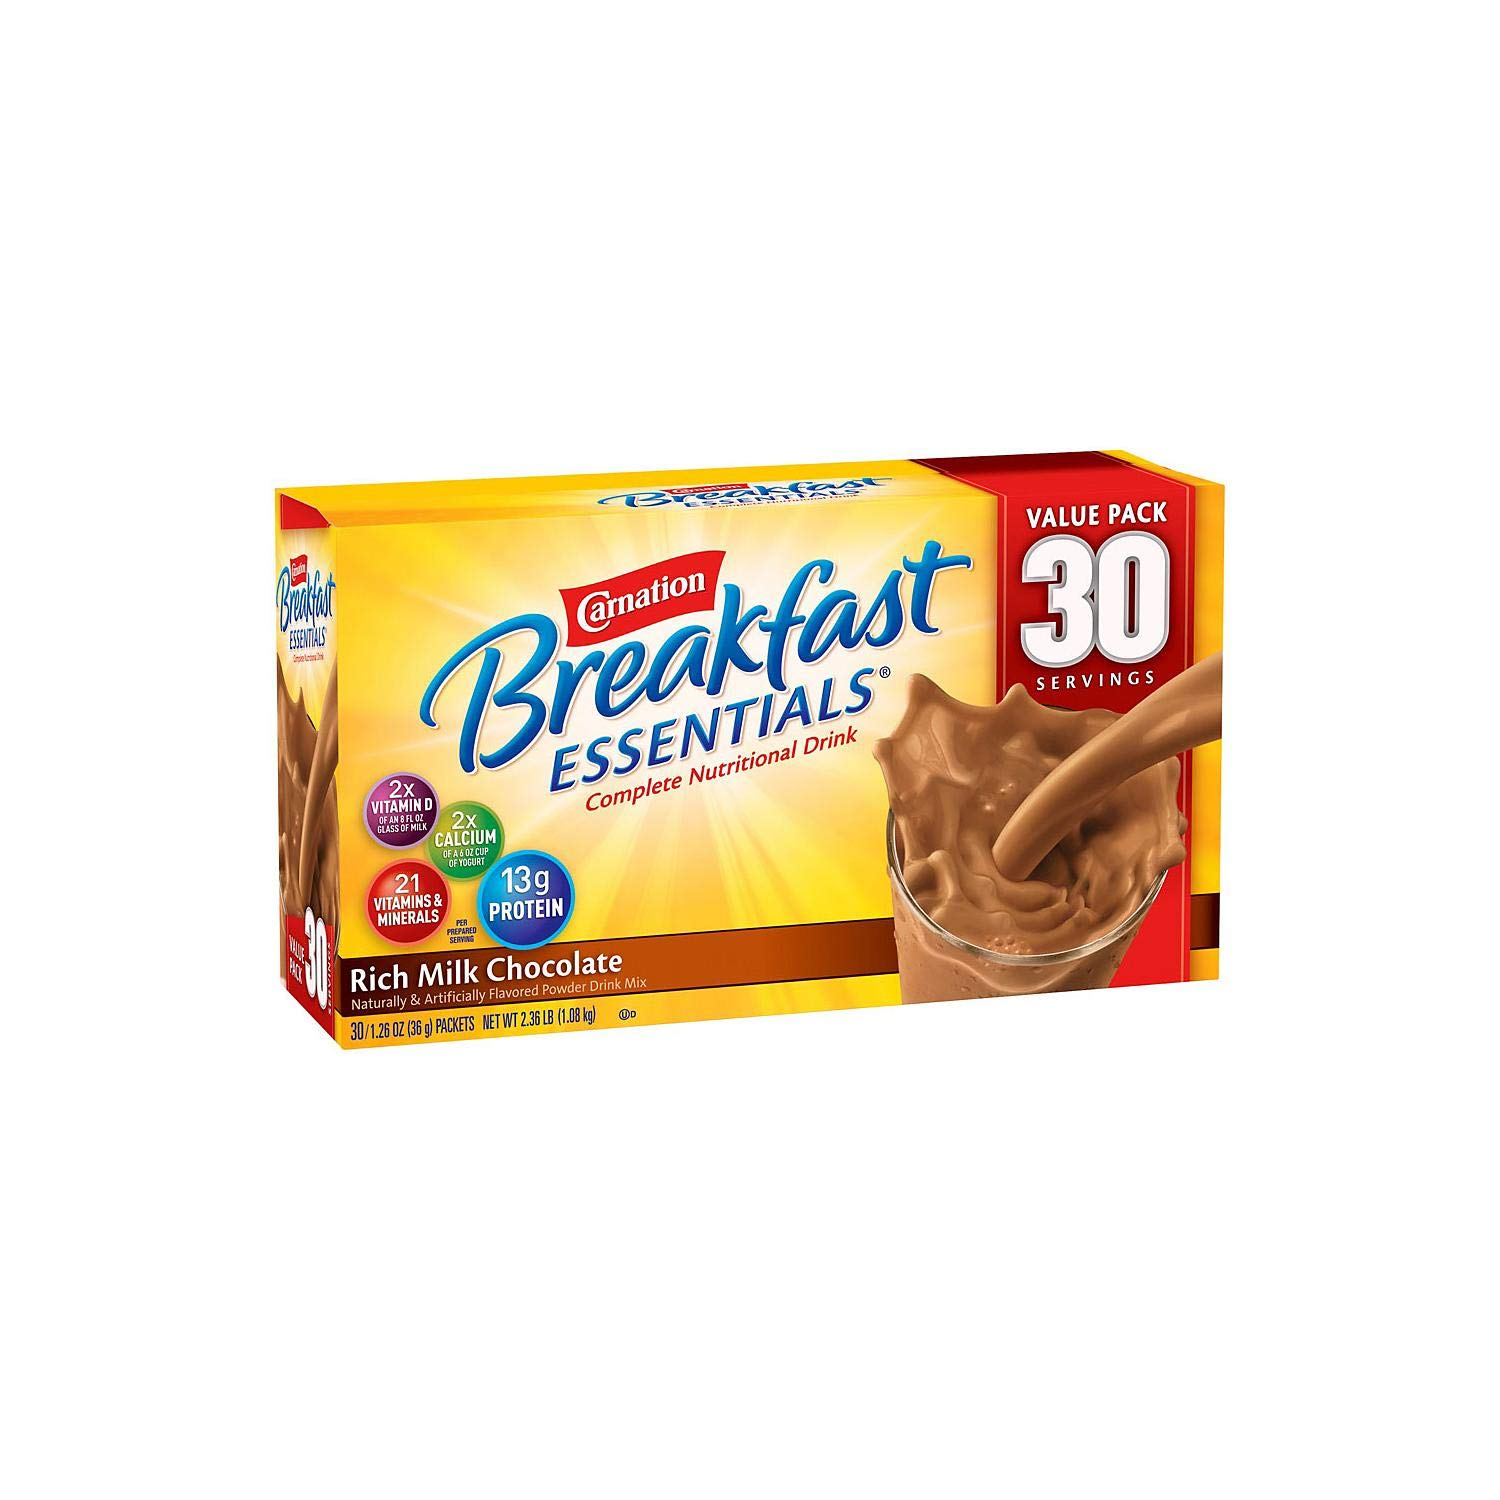 Carnation Breakfast Essentials Complete Nutritional Drink Rich Milk Chocolate - 30 Servings 2.36 LB